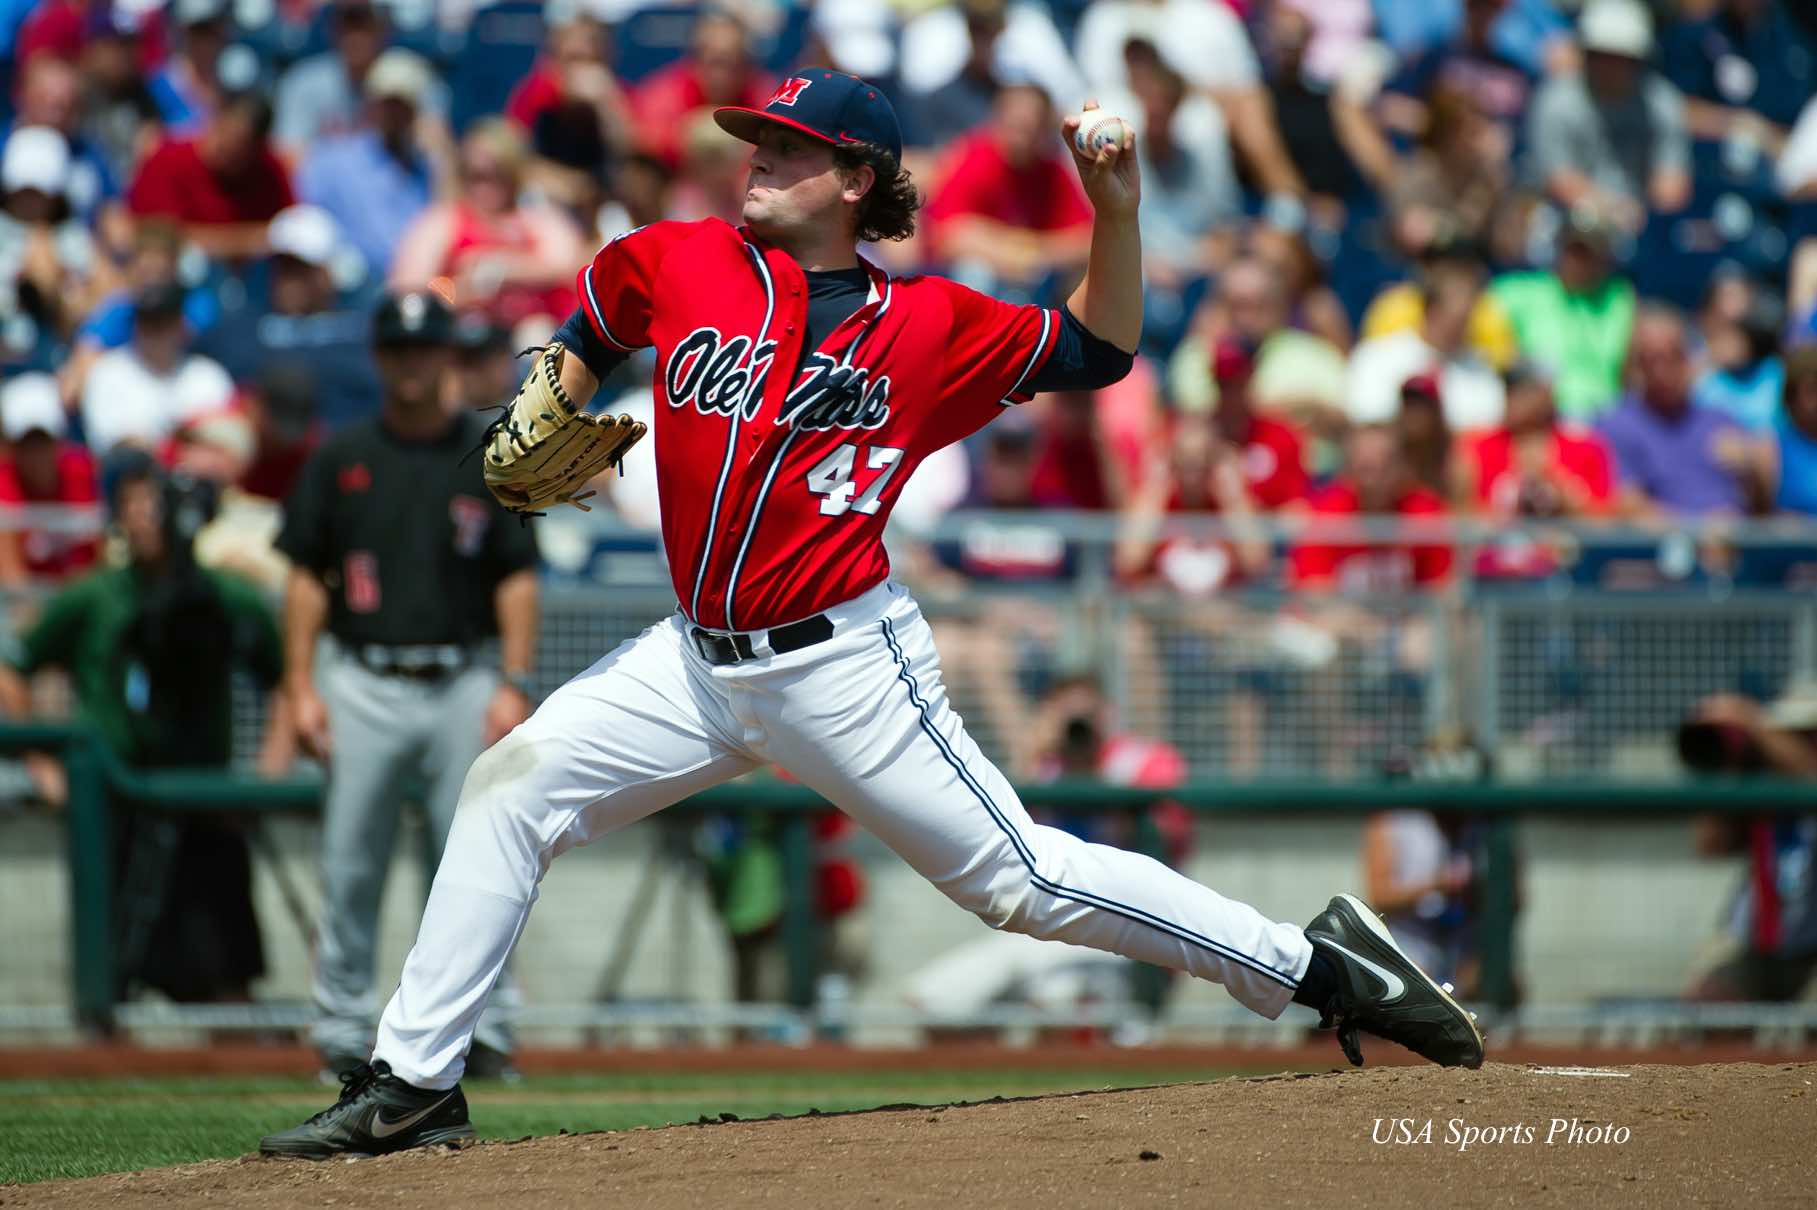 7bfd436ad Jun 17, 2014; Omaha, NE, USA; Mississippi Rebels pitcher Christian Trent